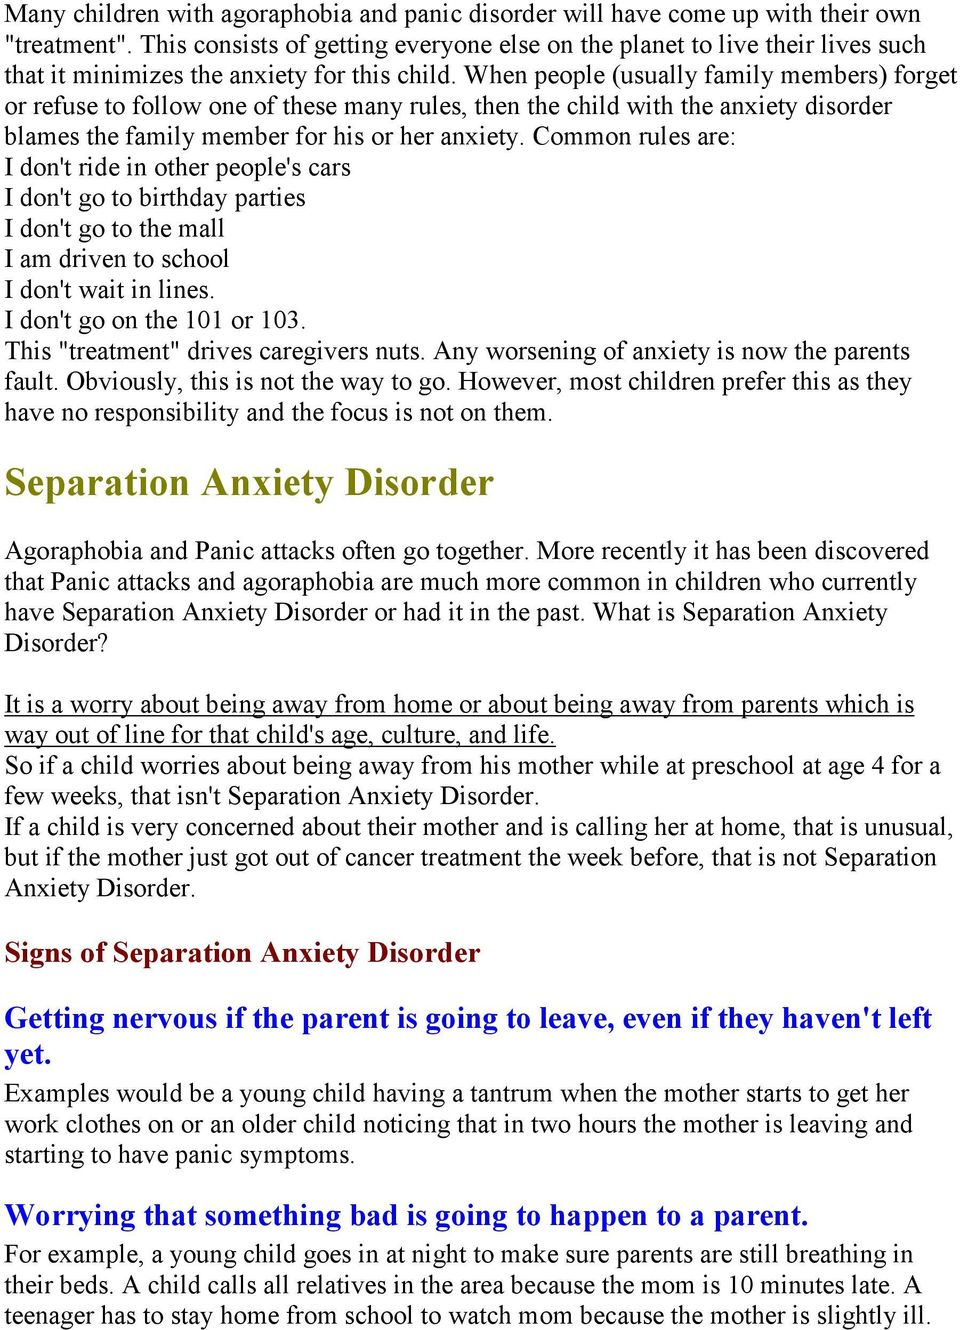 When people (usually family members) forget or refuse to follow one of these many rules, then the child with the anxiety disorder blames the family member for his or her anxiety.